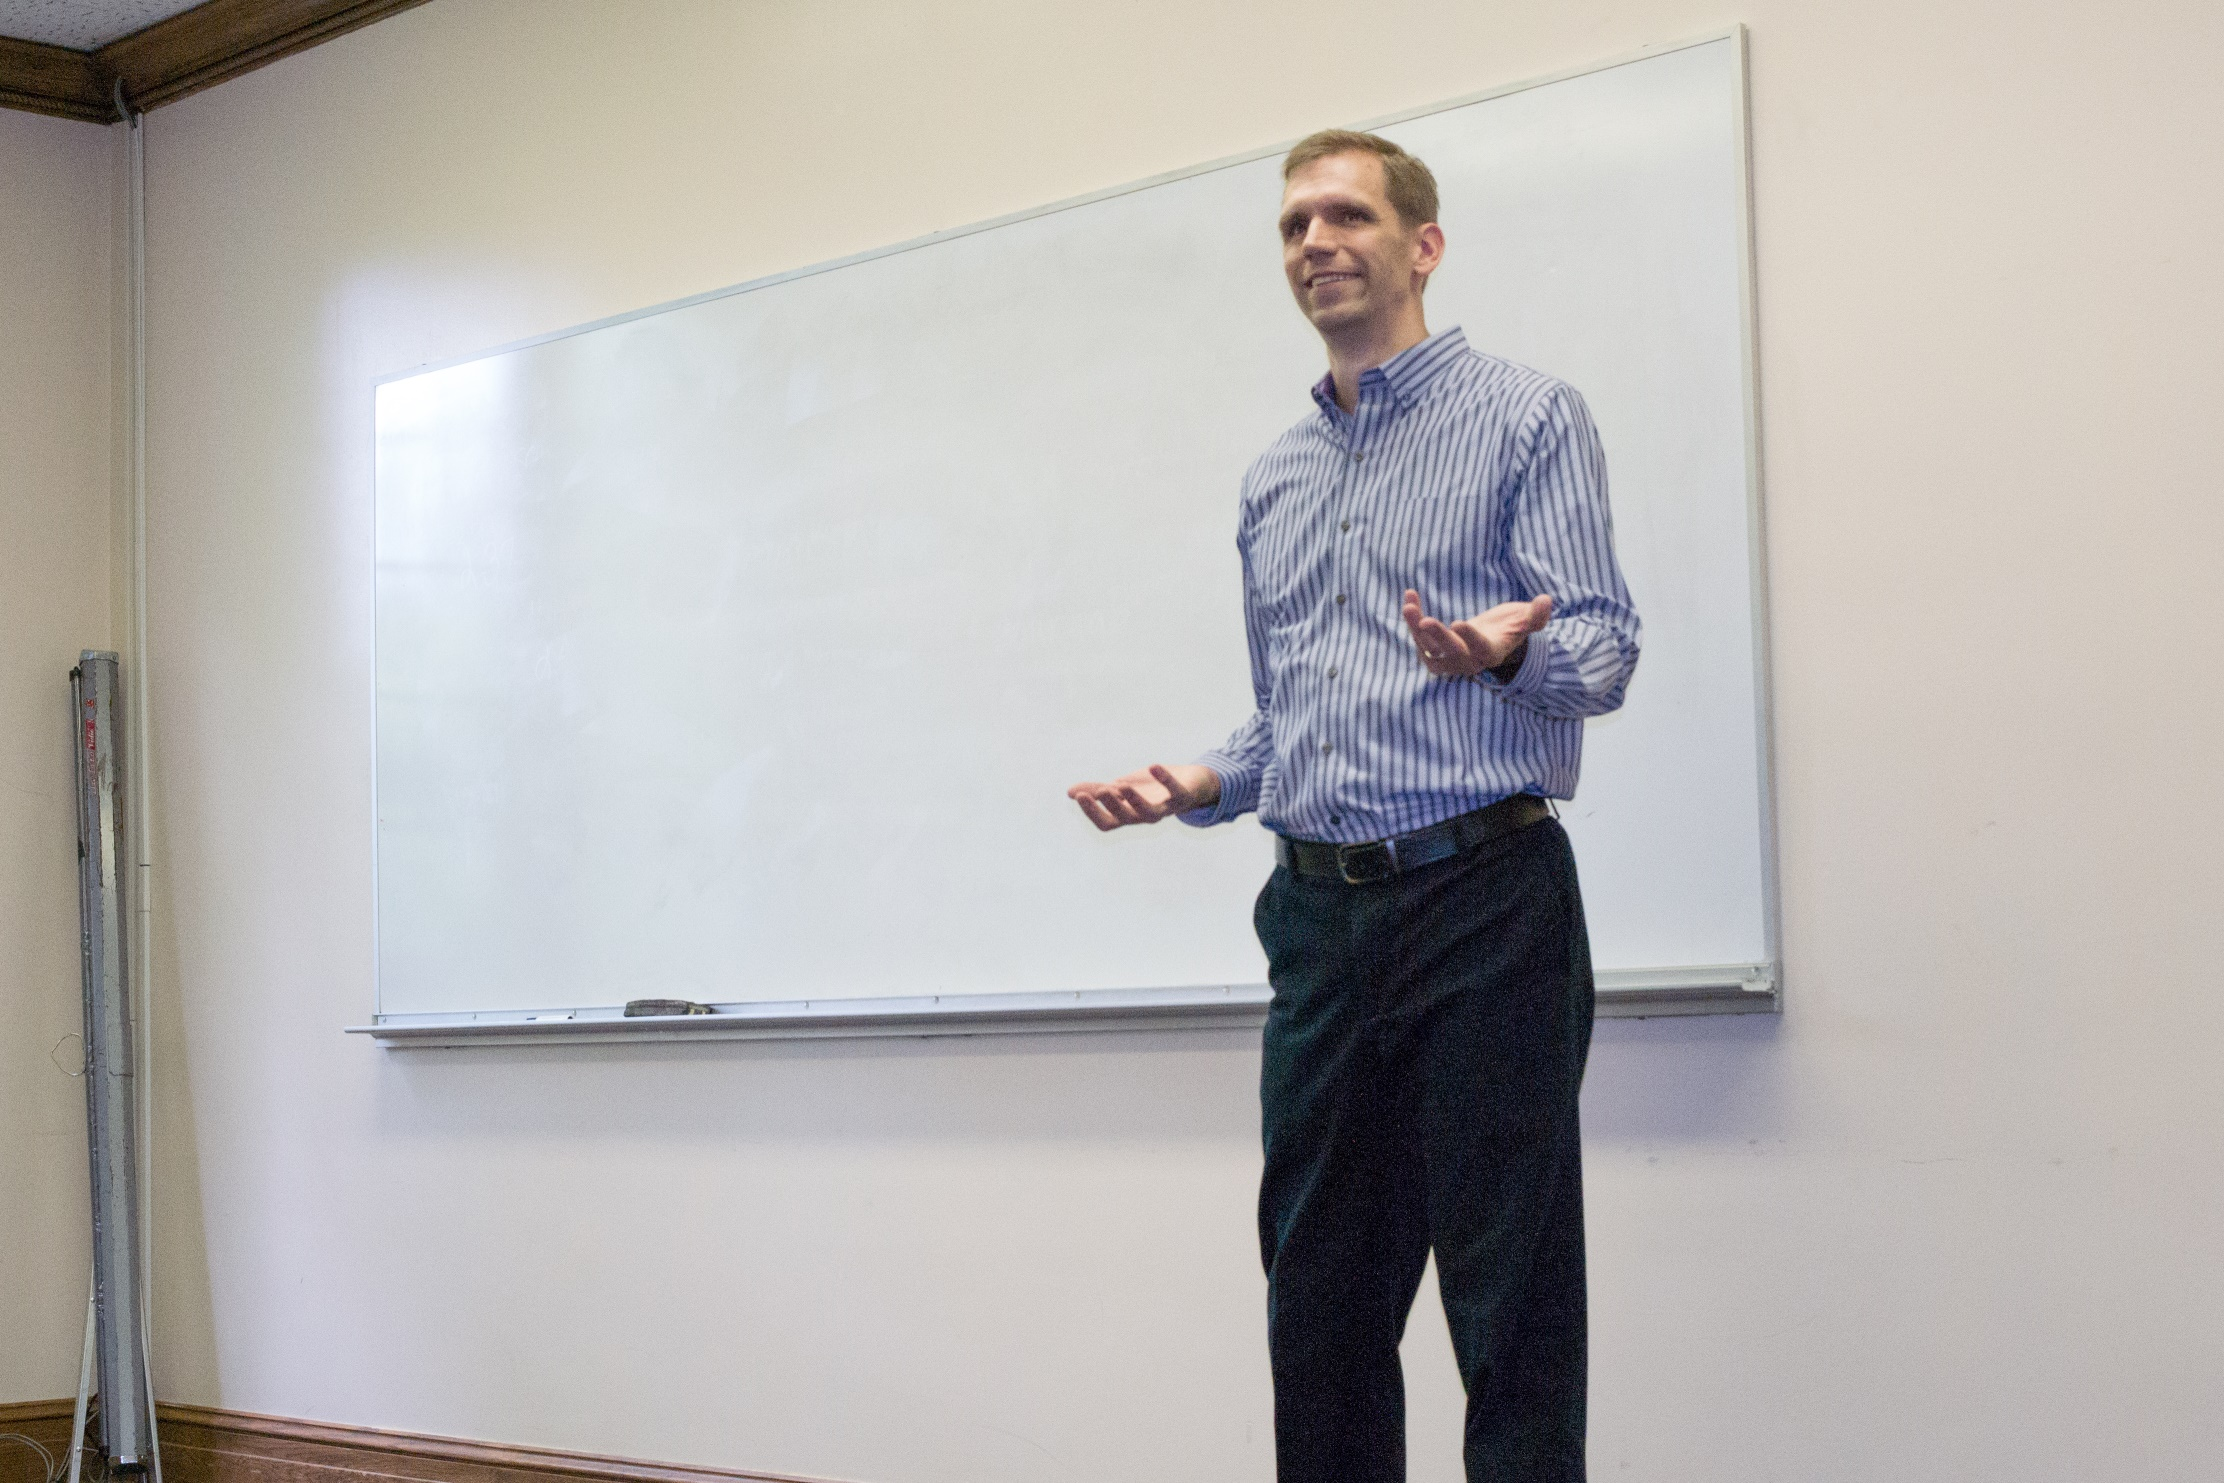 Derek presenting at a workshop